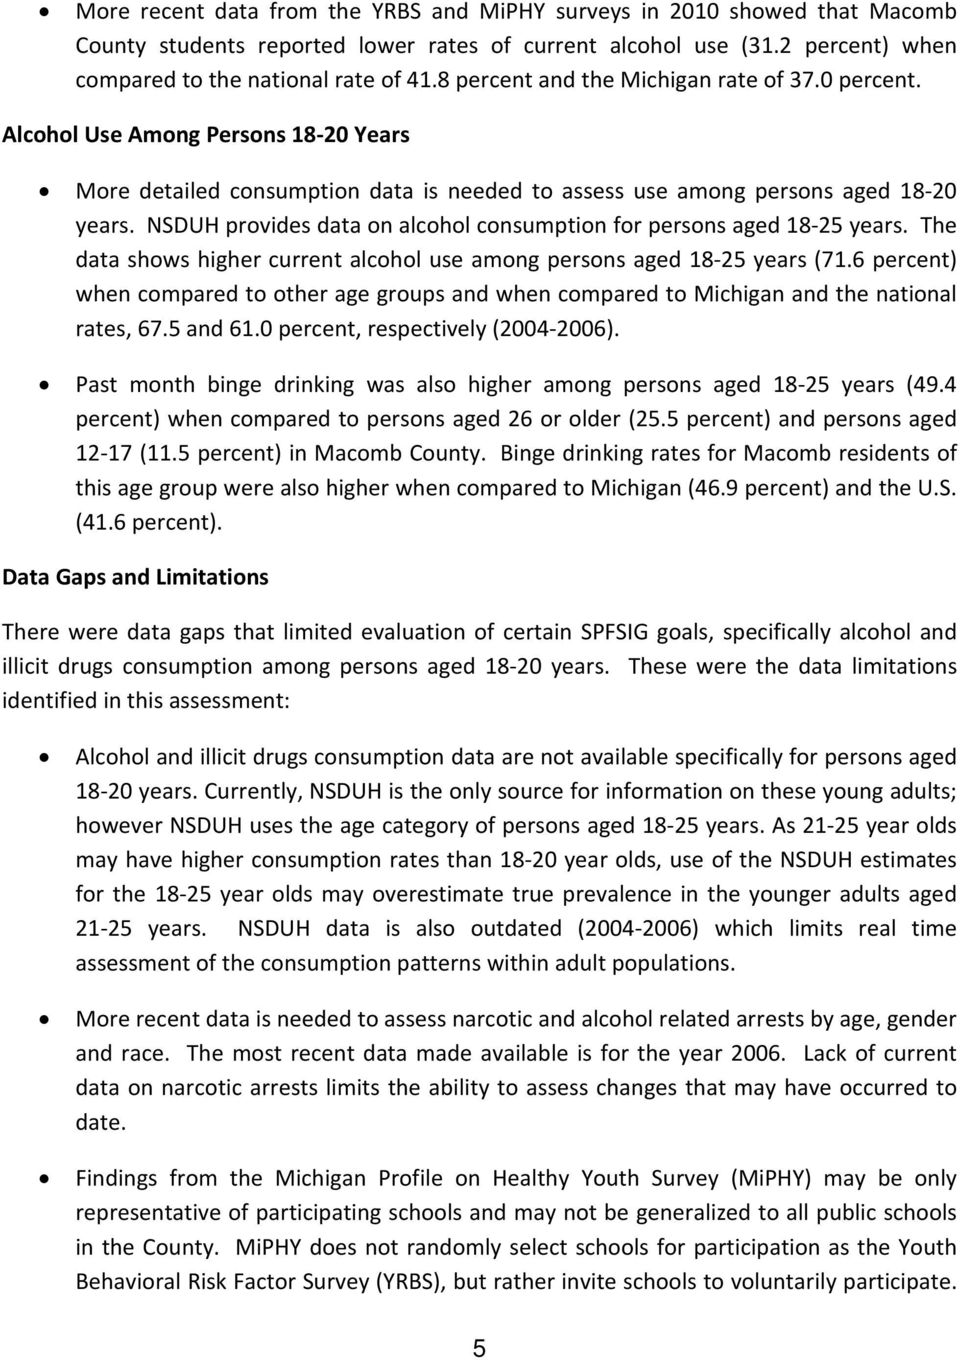 NSDUH provides data on alcohol consumption for persons aged 18 25 years. The data shows higher current alcohol use among persons aged 18 25 years (71.